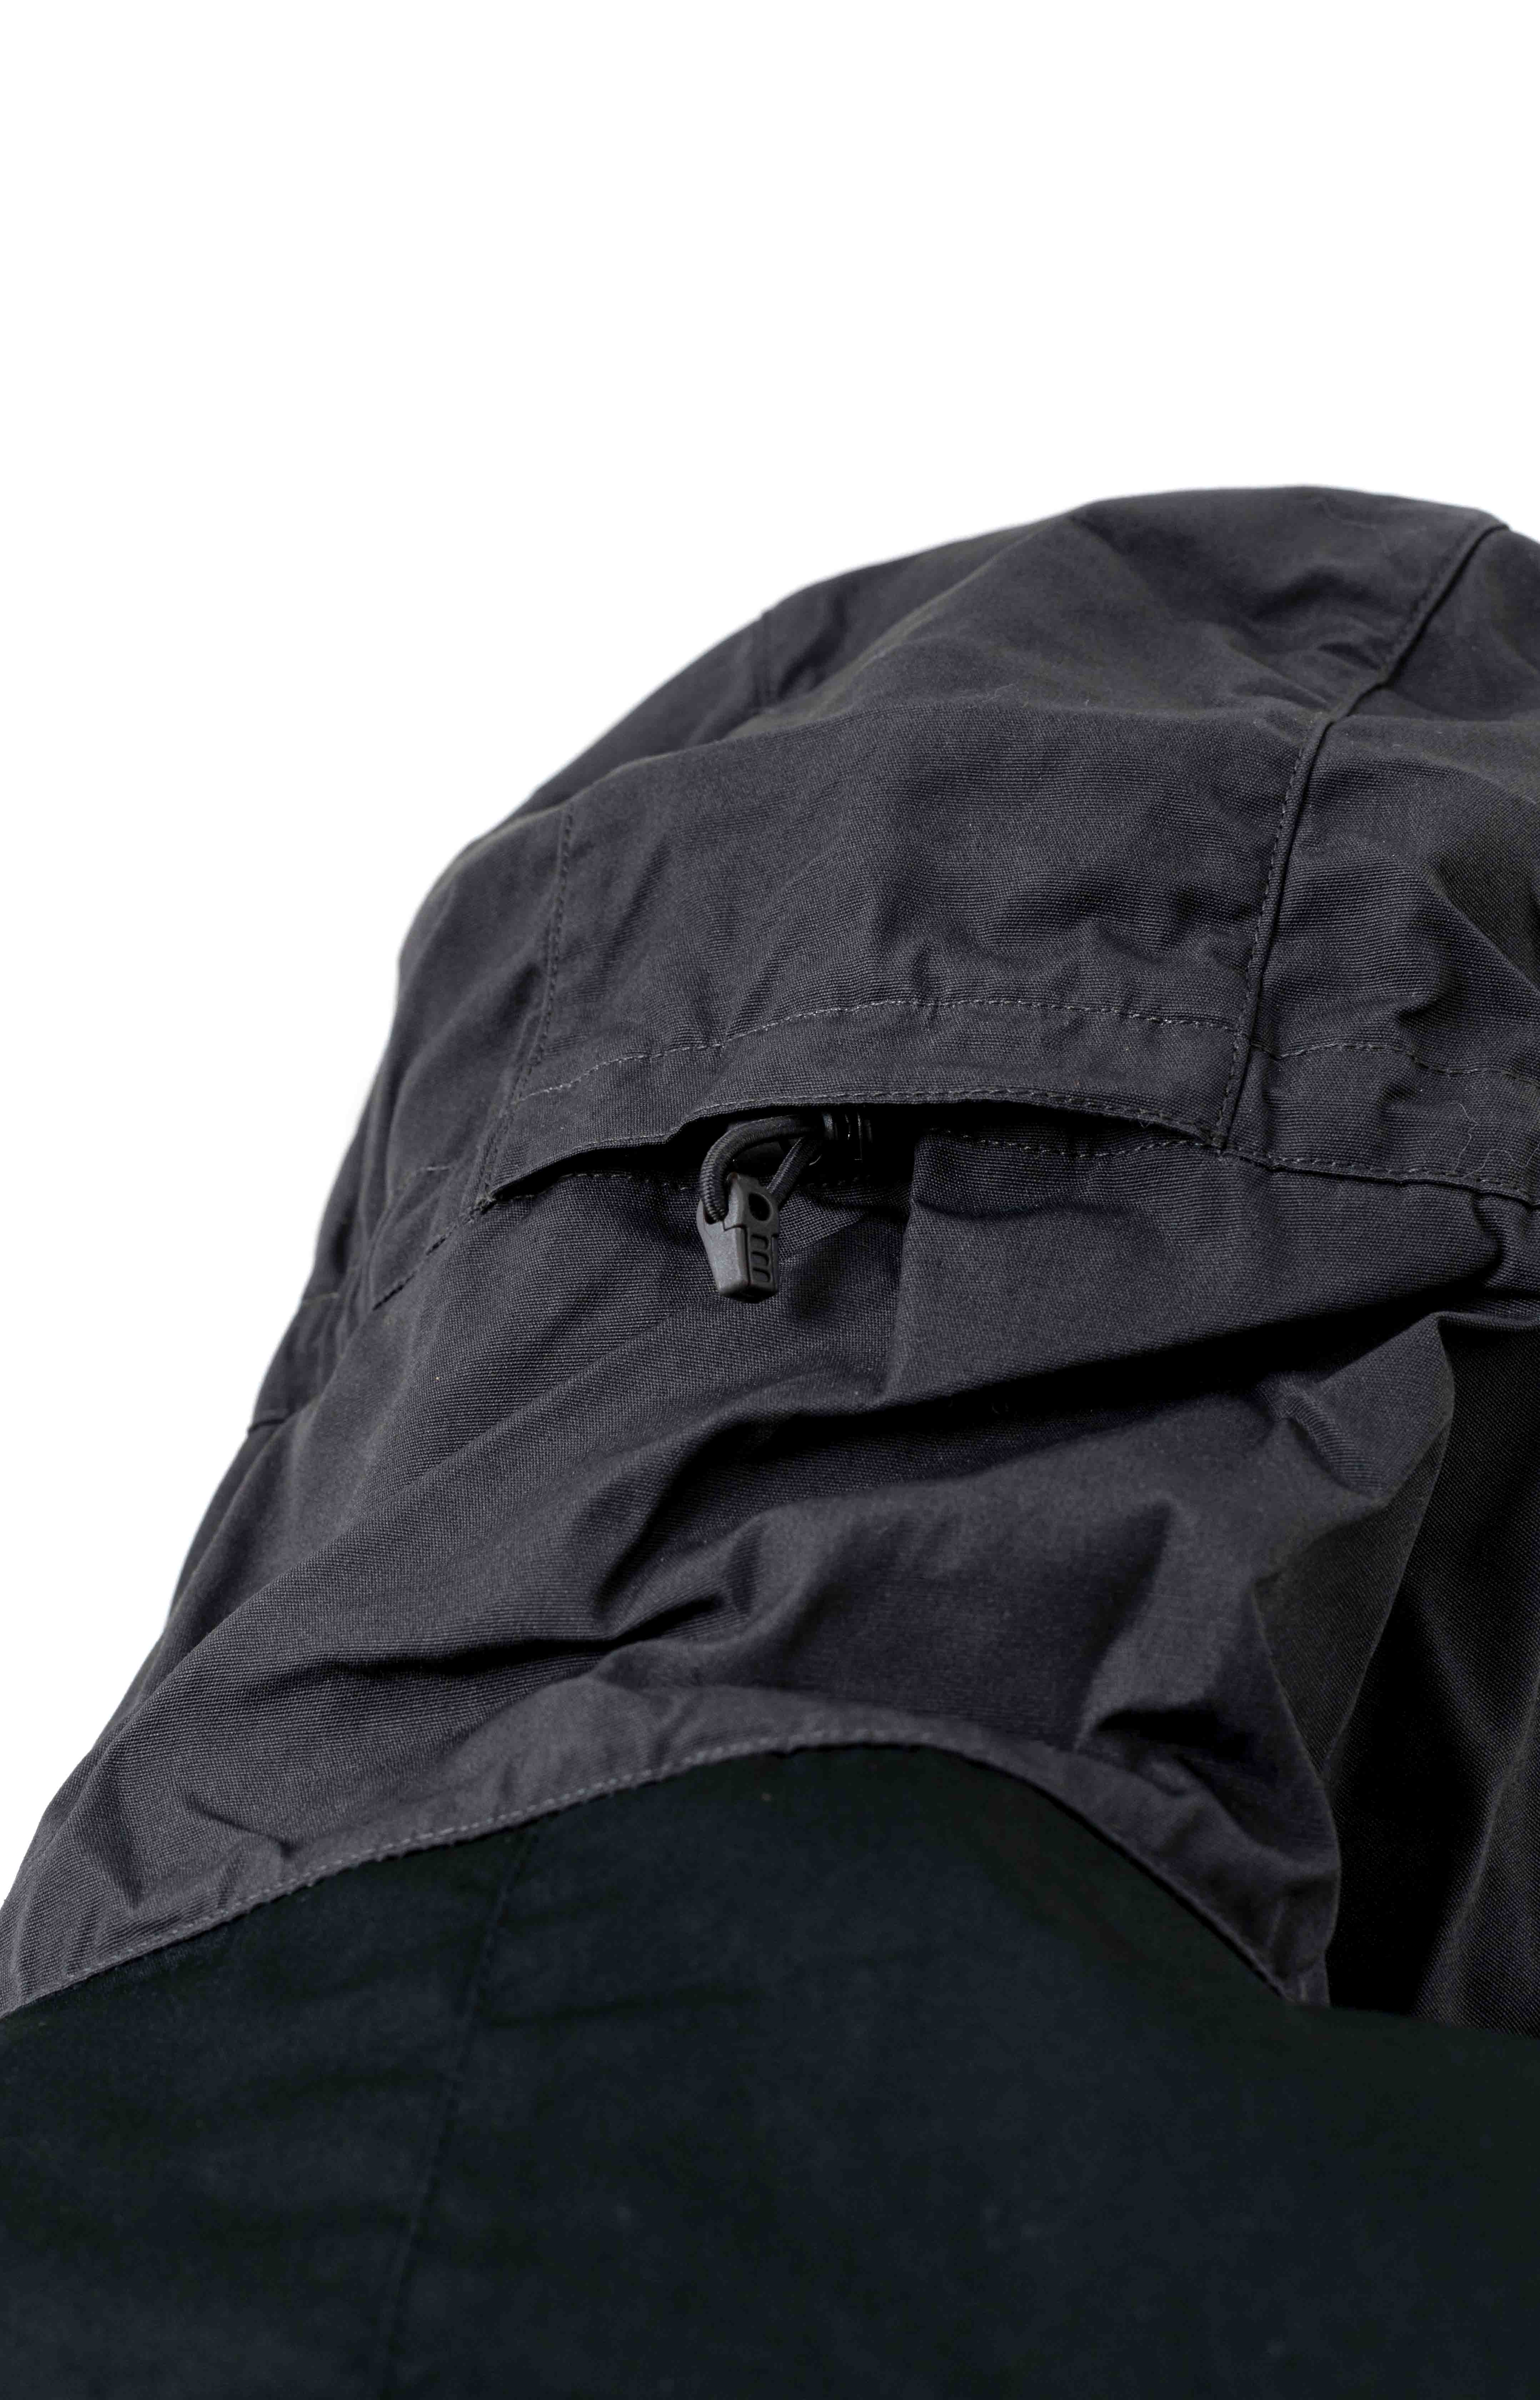 Vidda Pro Jacket - Dark Grey/Black 4